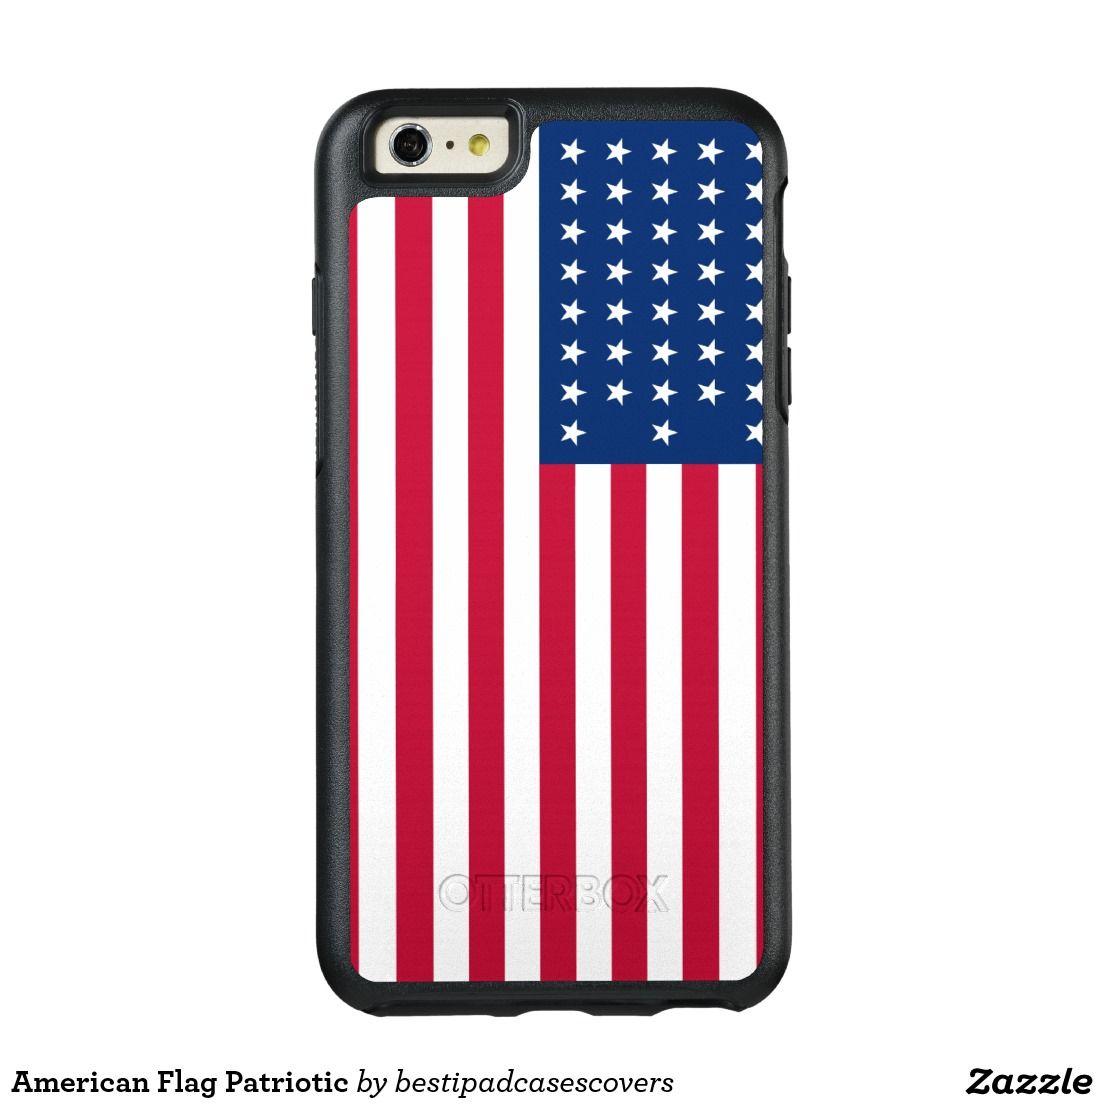 American Flag Otterbox Symmetry Iphone 6 Plus Case Zazzle Com Iphone Case Covers Iphone 6 Plus Case Iphone Cases